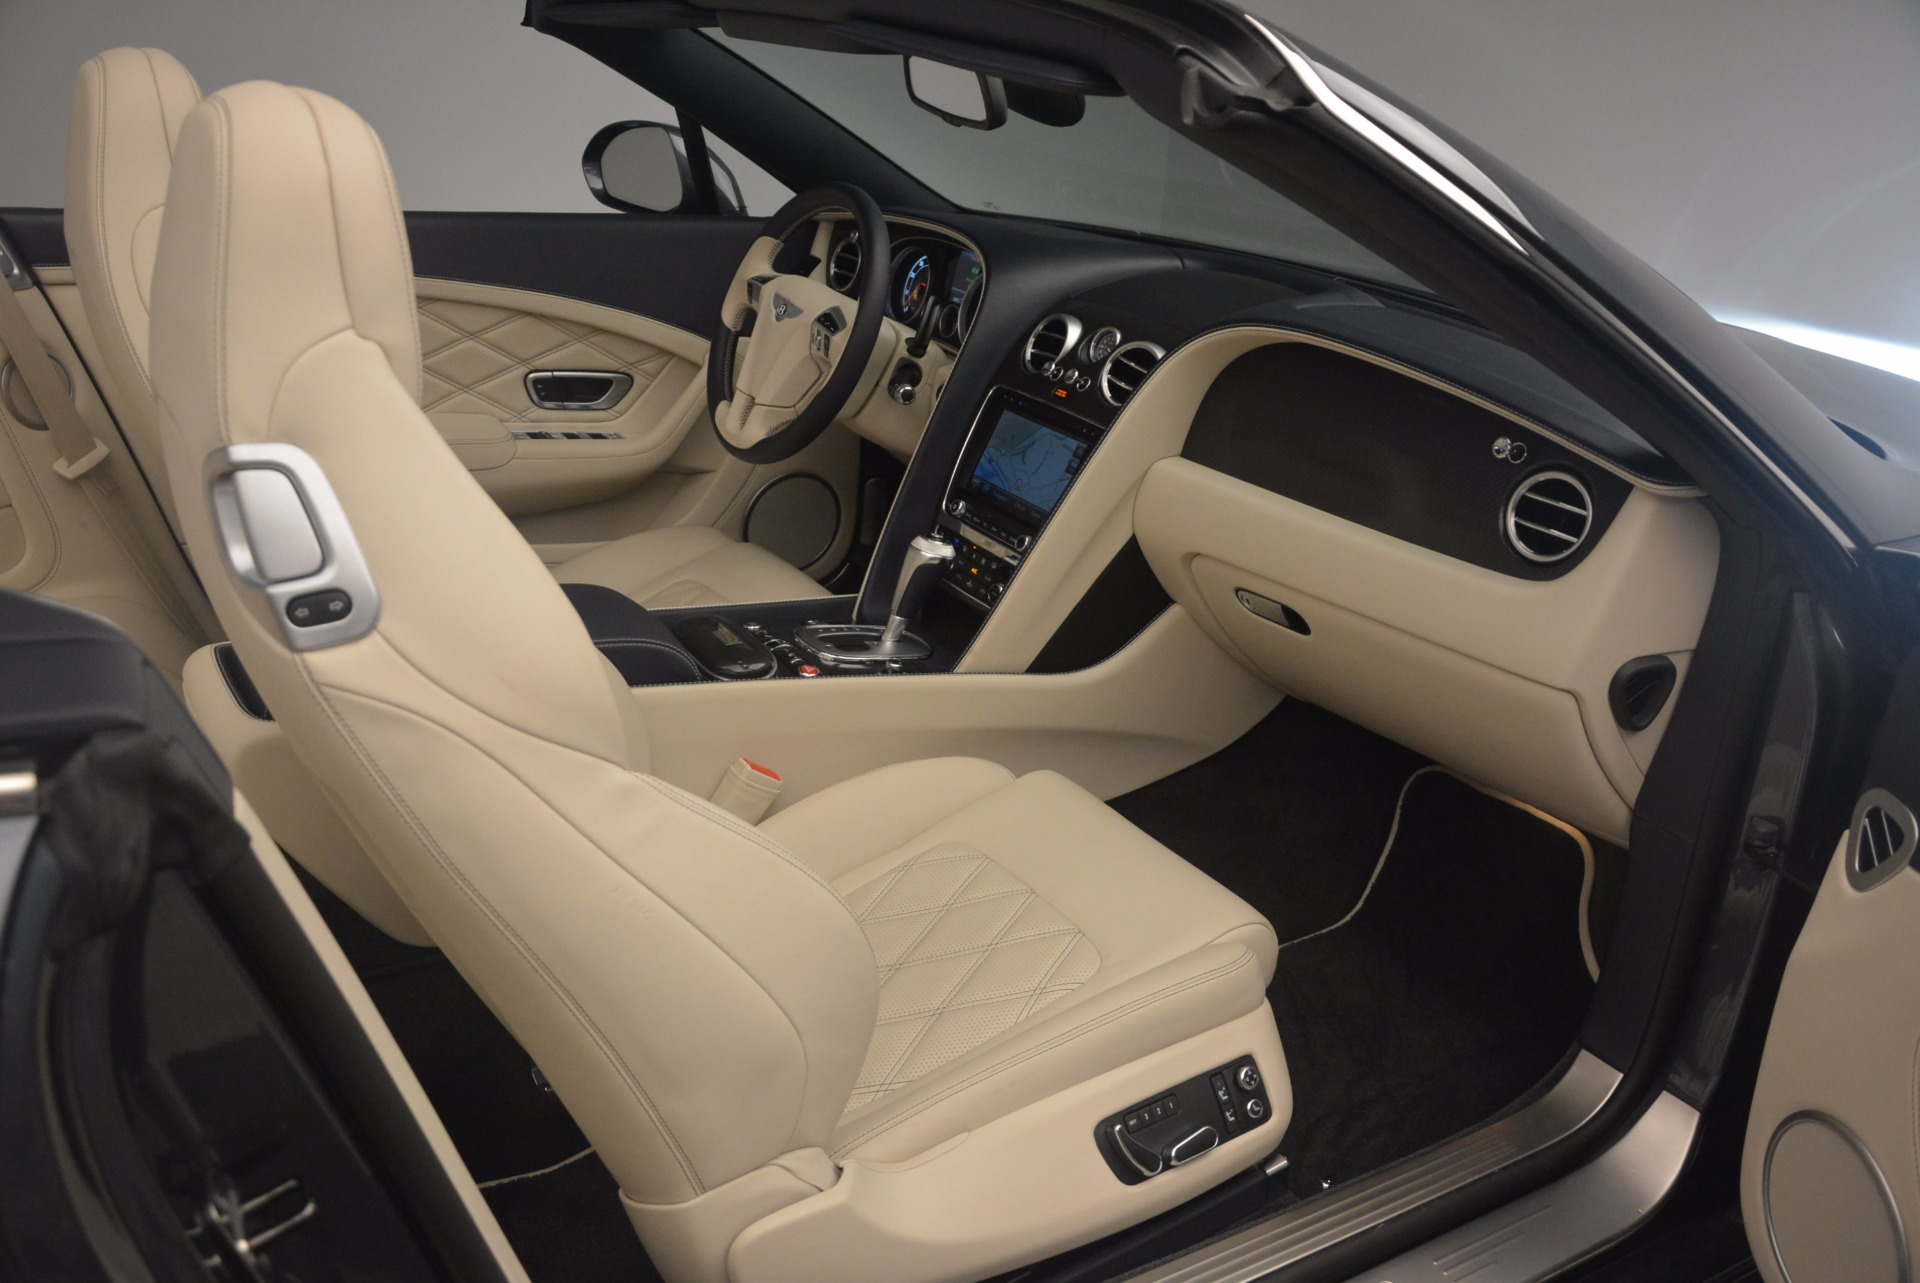 Used 2013 Bentley Continental GT V8 Le Mans Edition, 1 of 48 For Sale In Greenwich, CT. Alfa Romeo of Greenwich, 7226 1288_p48